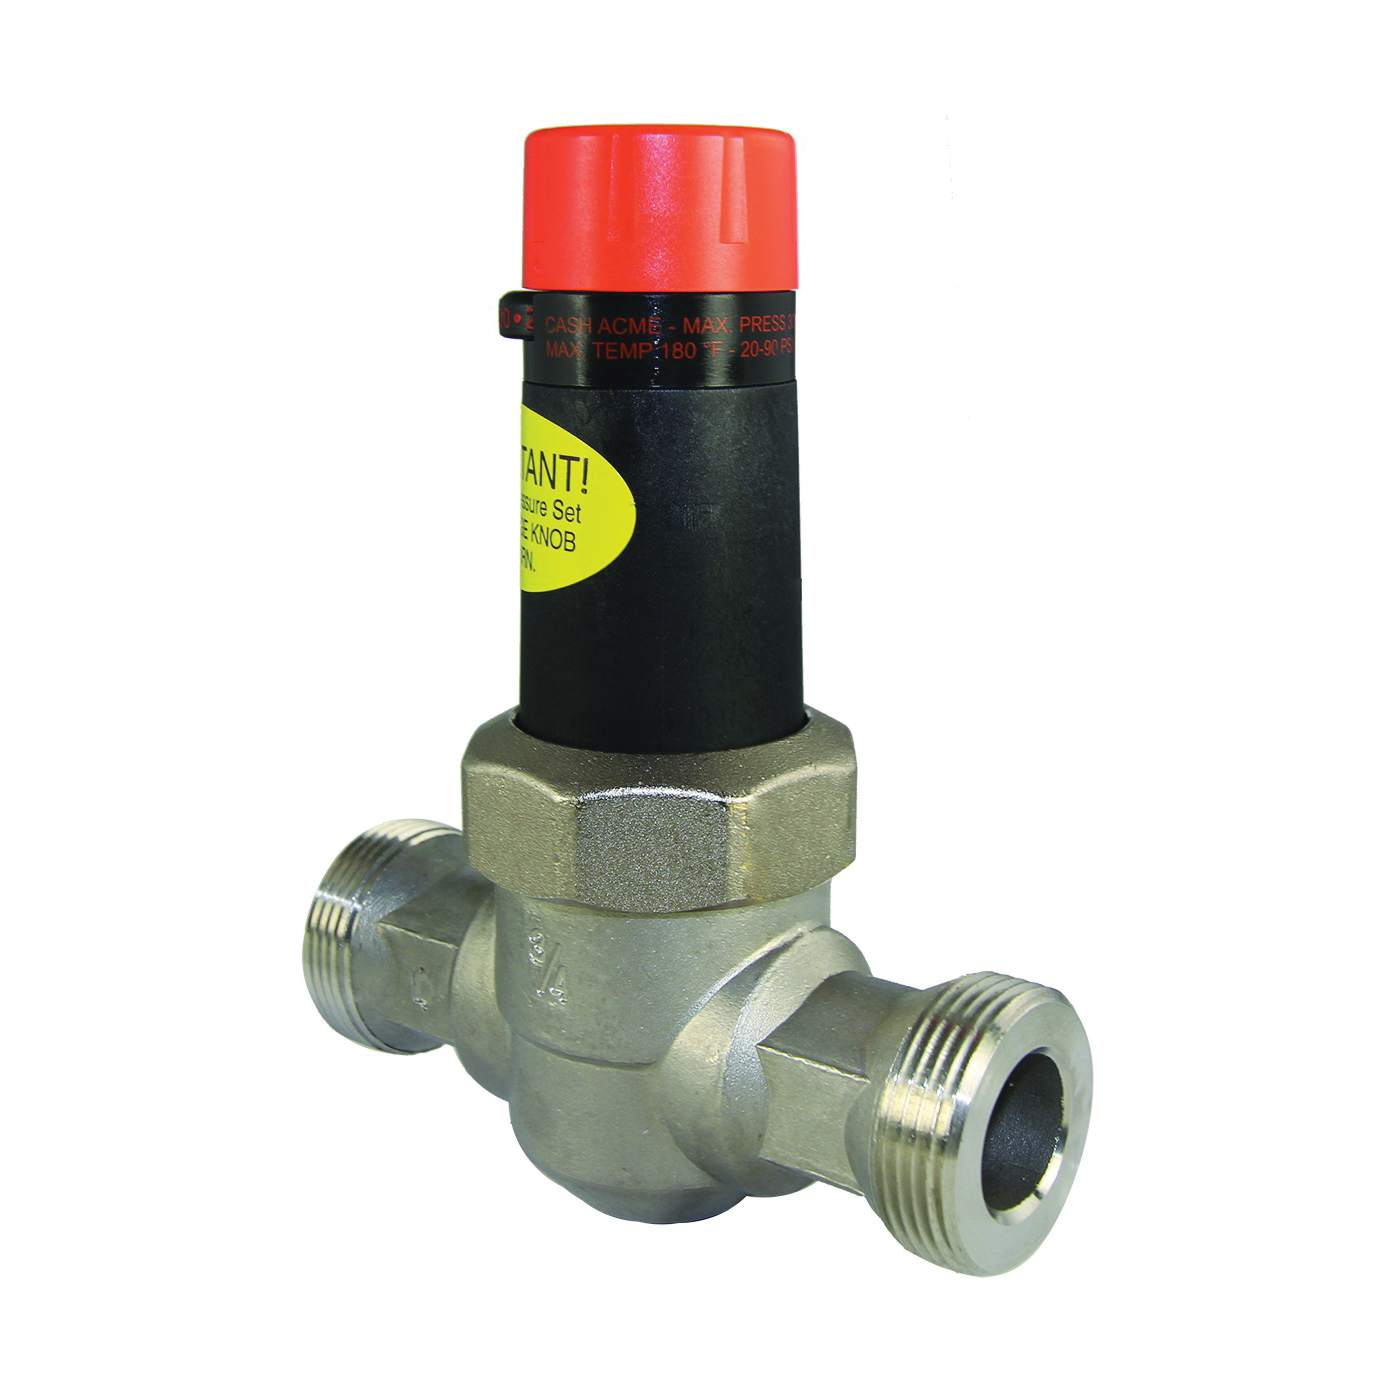 Picture of SharkBite EB25 Series 22266-0045 Pressure Regulating Valve, 1 in Connection, NPT, Stainless Steel Body